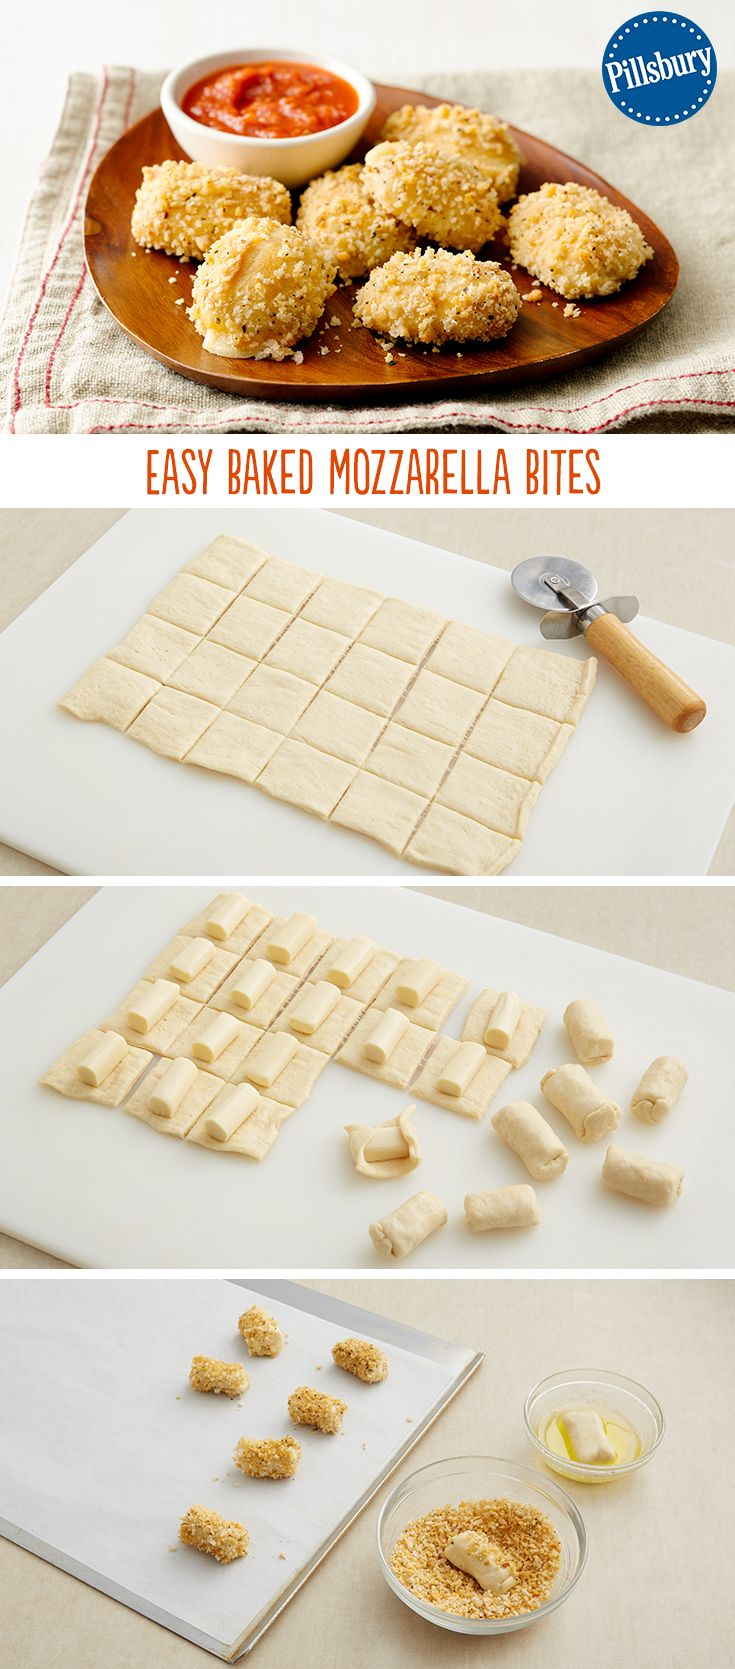 Make your favorite restaurant appetizer at home with these kid-approved Easy Baked Mozzarella Bites —perfect for dipping in marinara sauce! This recipe uses string cheese for the filling and has a crunchy coating with the panko bread crumbs. You could also serve them for the big game!